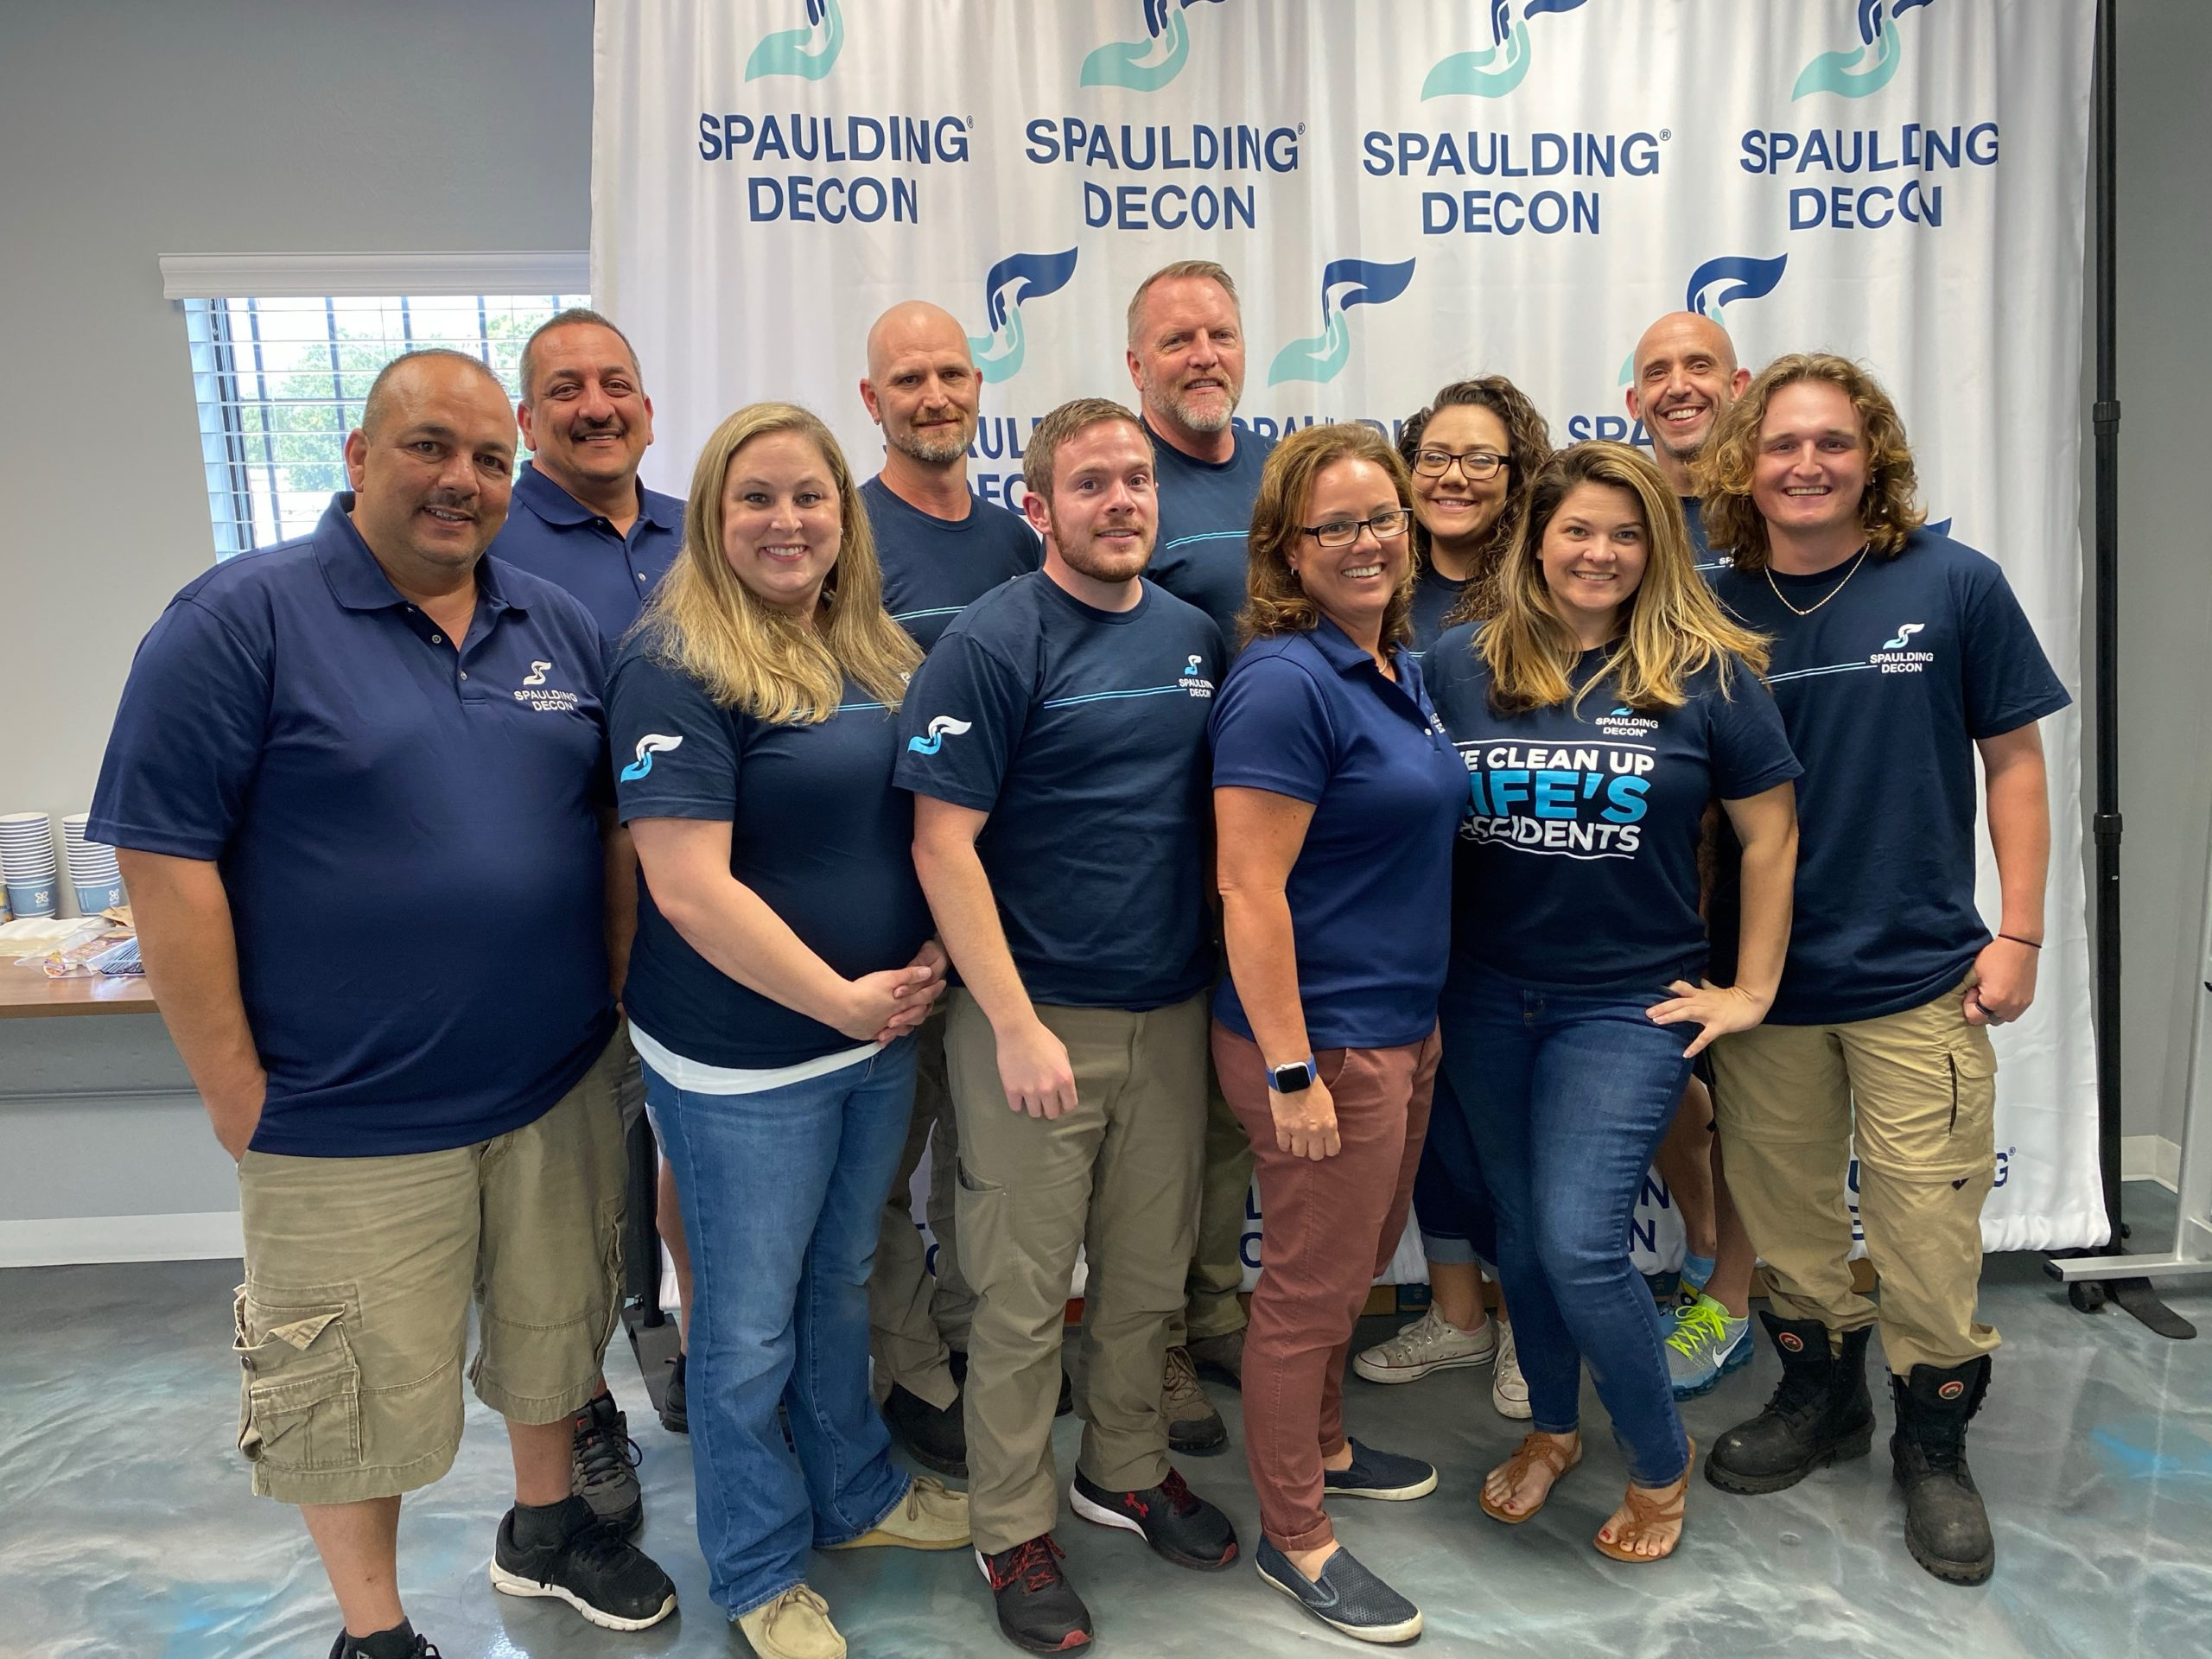 October Spauding Decon Franchisees